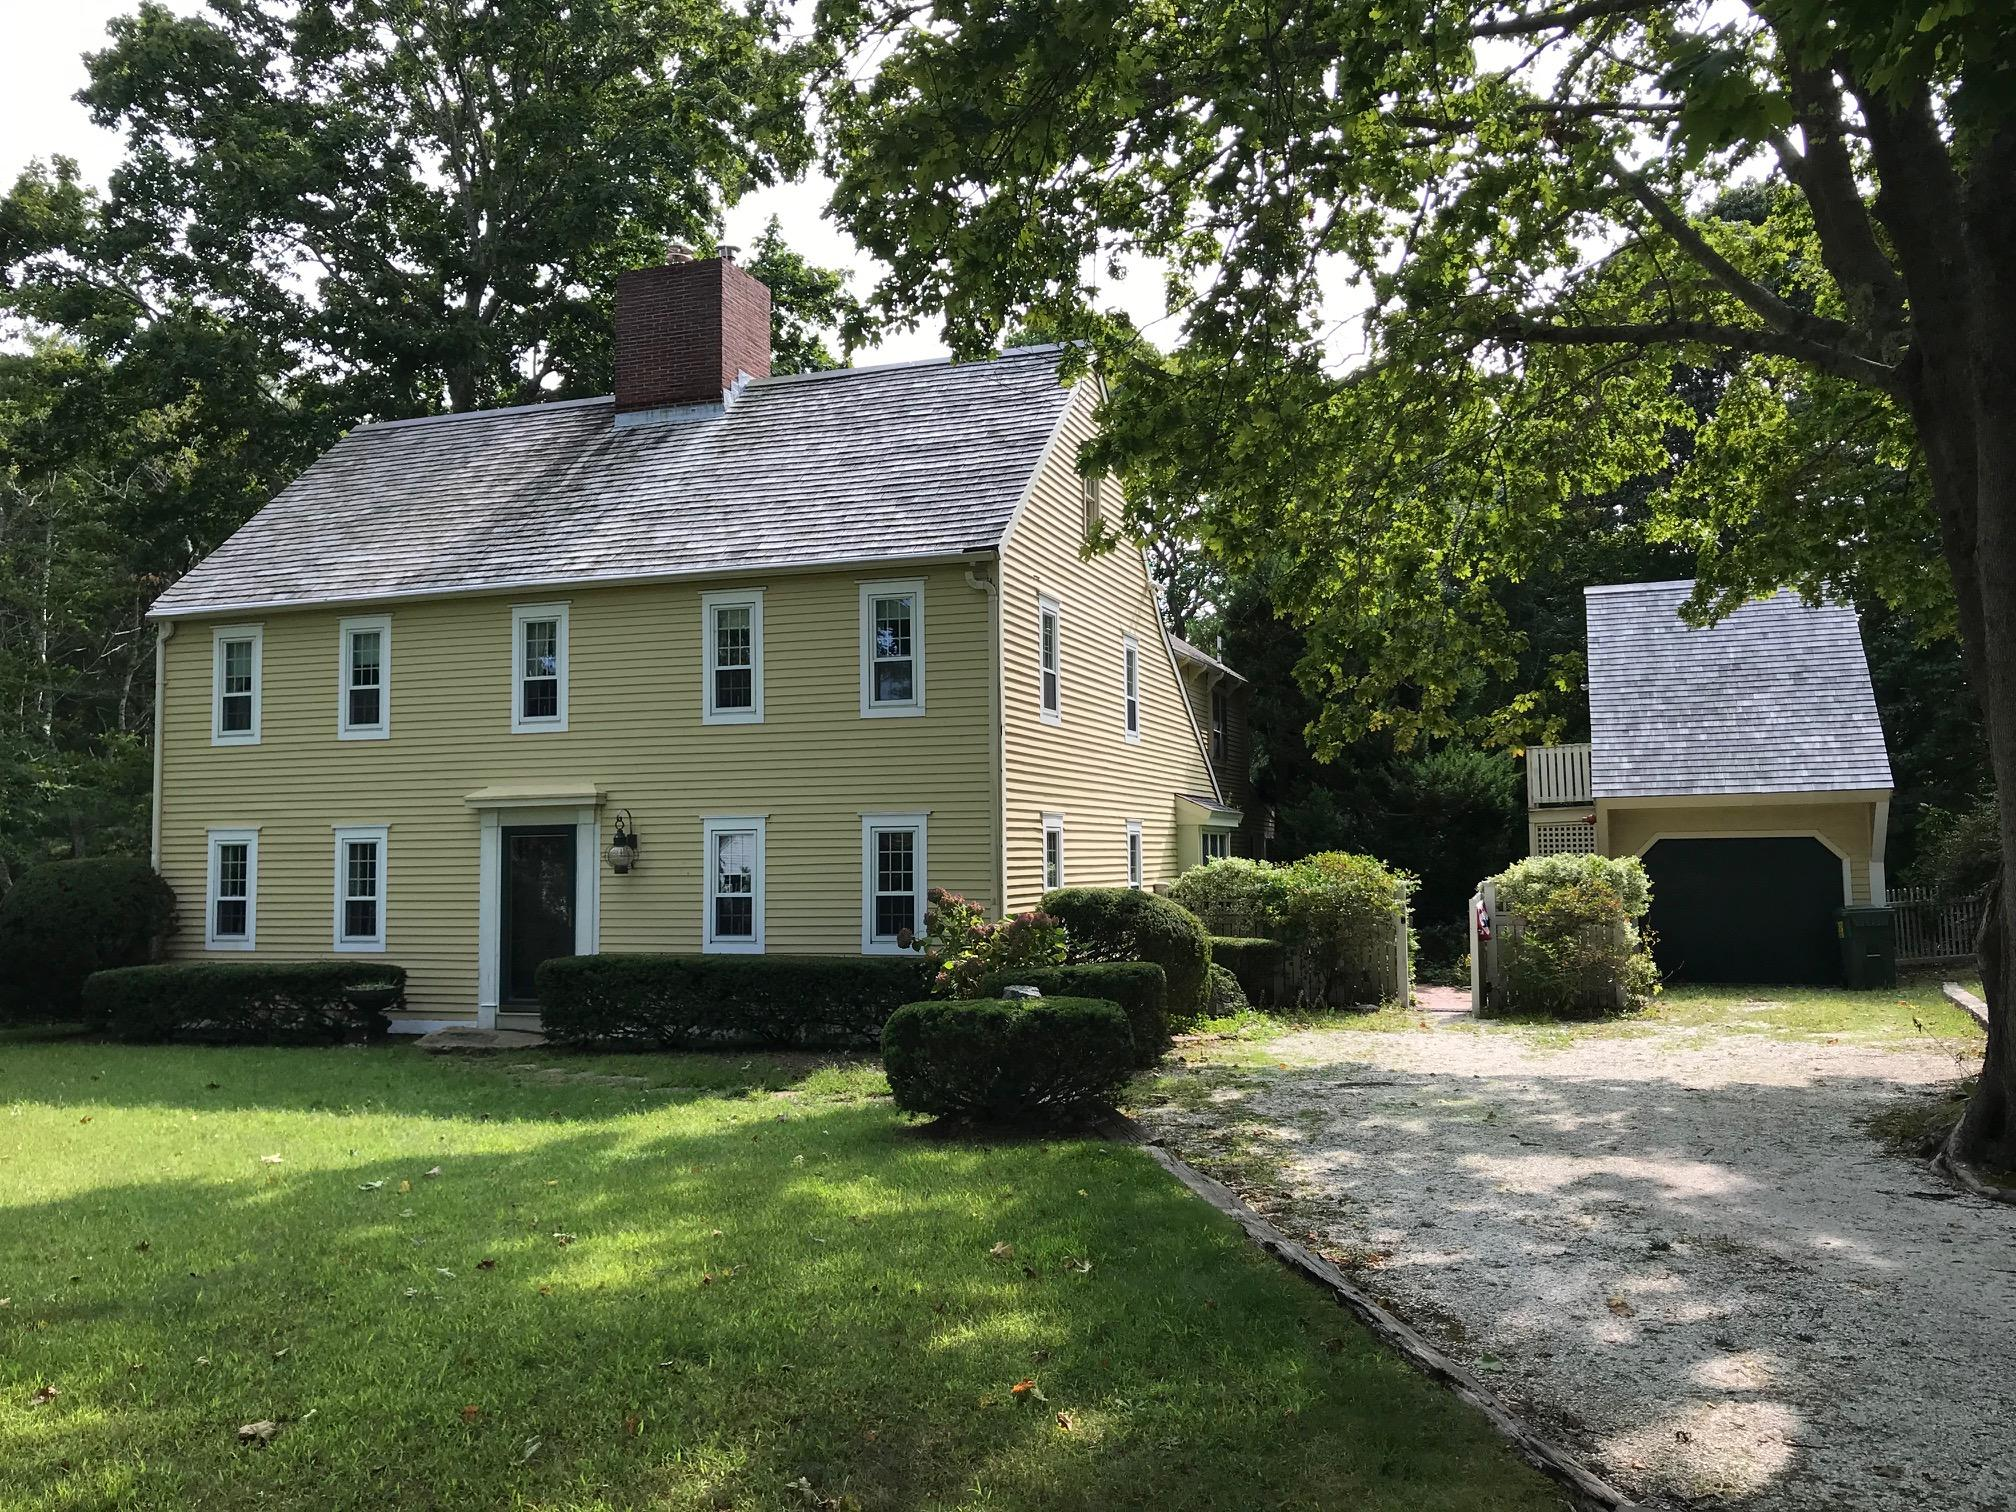 147 Thacher Shore Road, Yarmouth Port MA, 02675 details